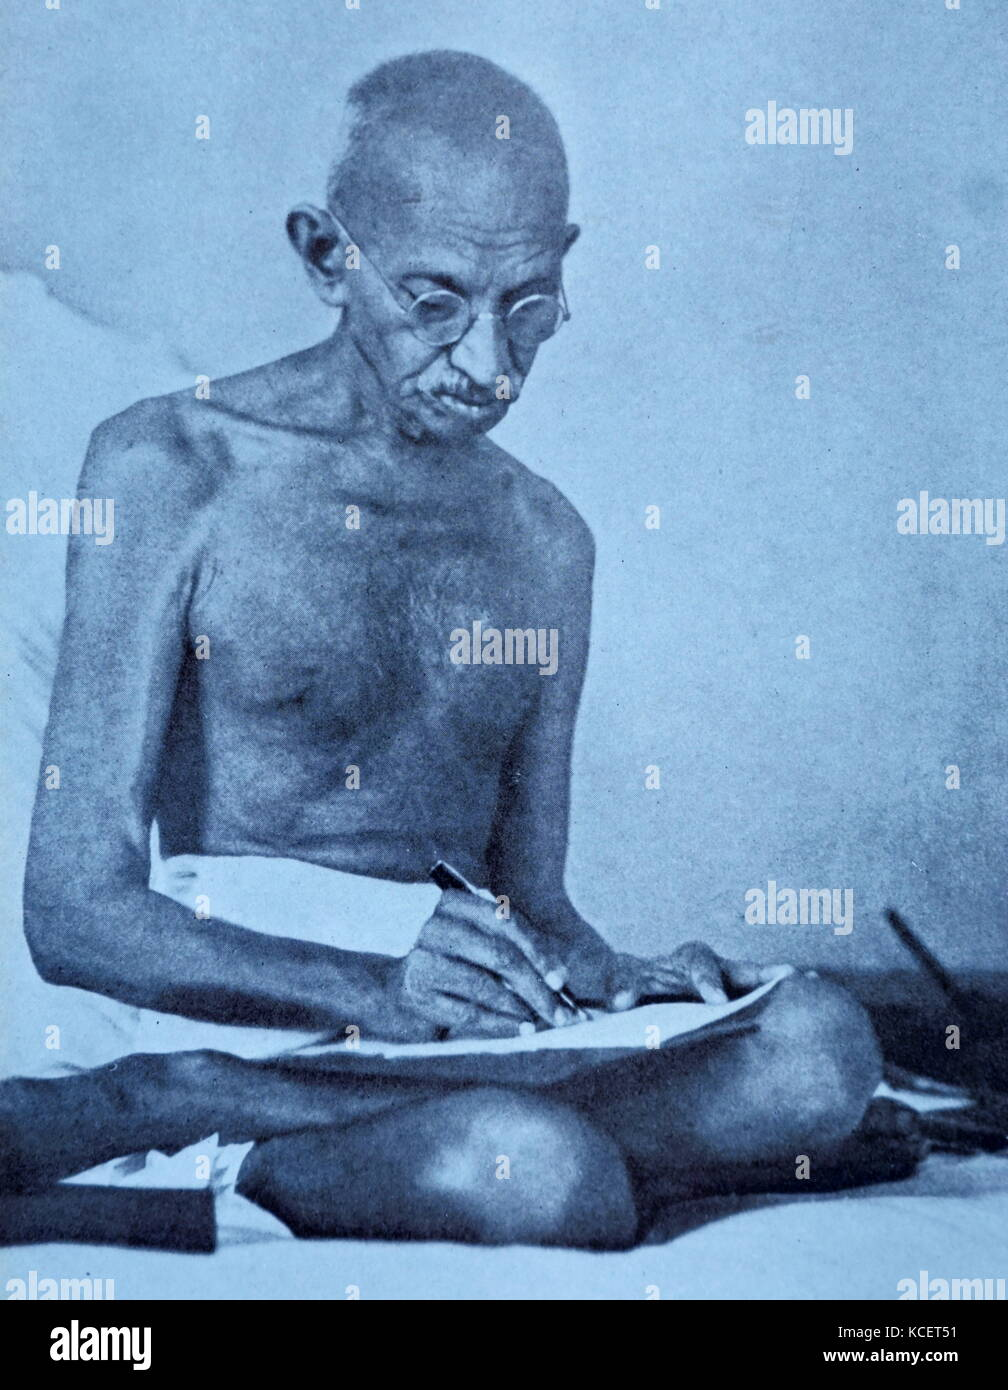 Essay on the Emergence of Gandhi in India's Struggle for Freedom